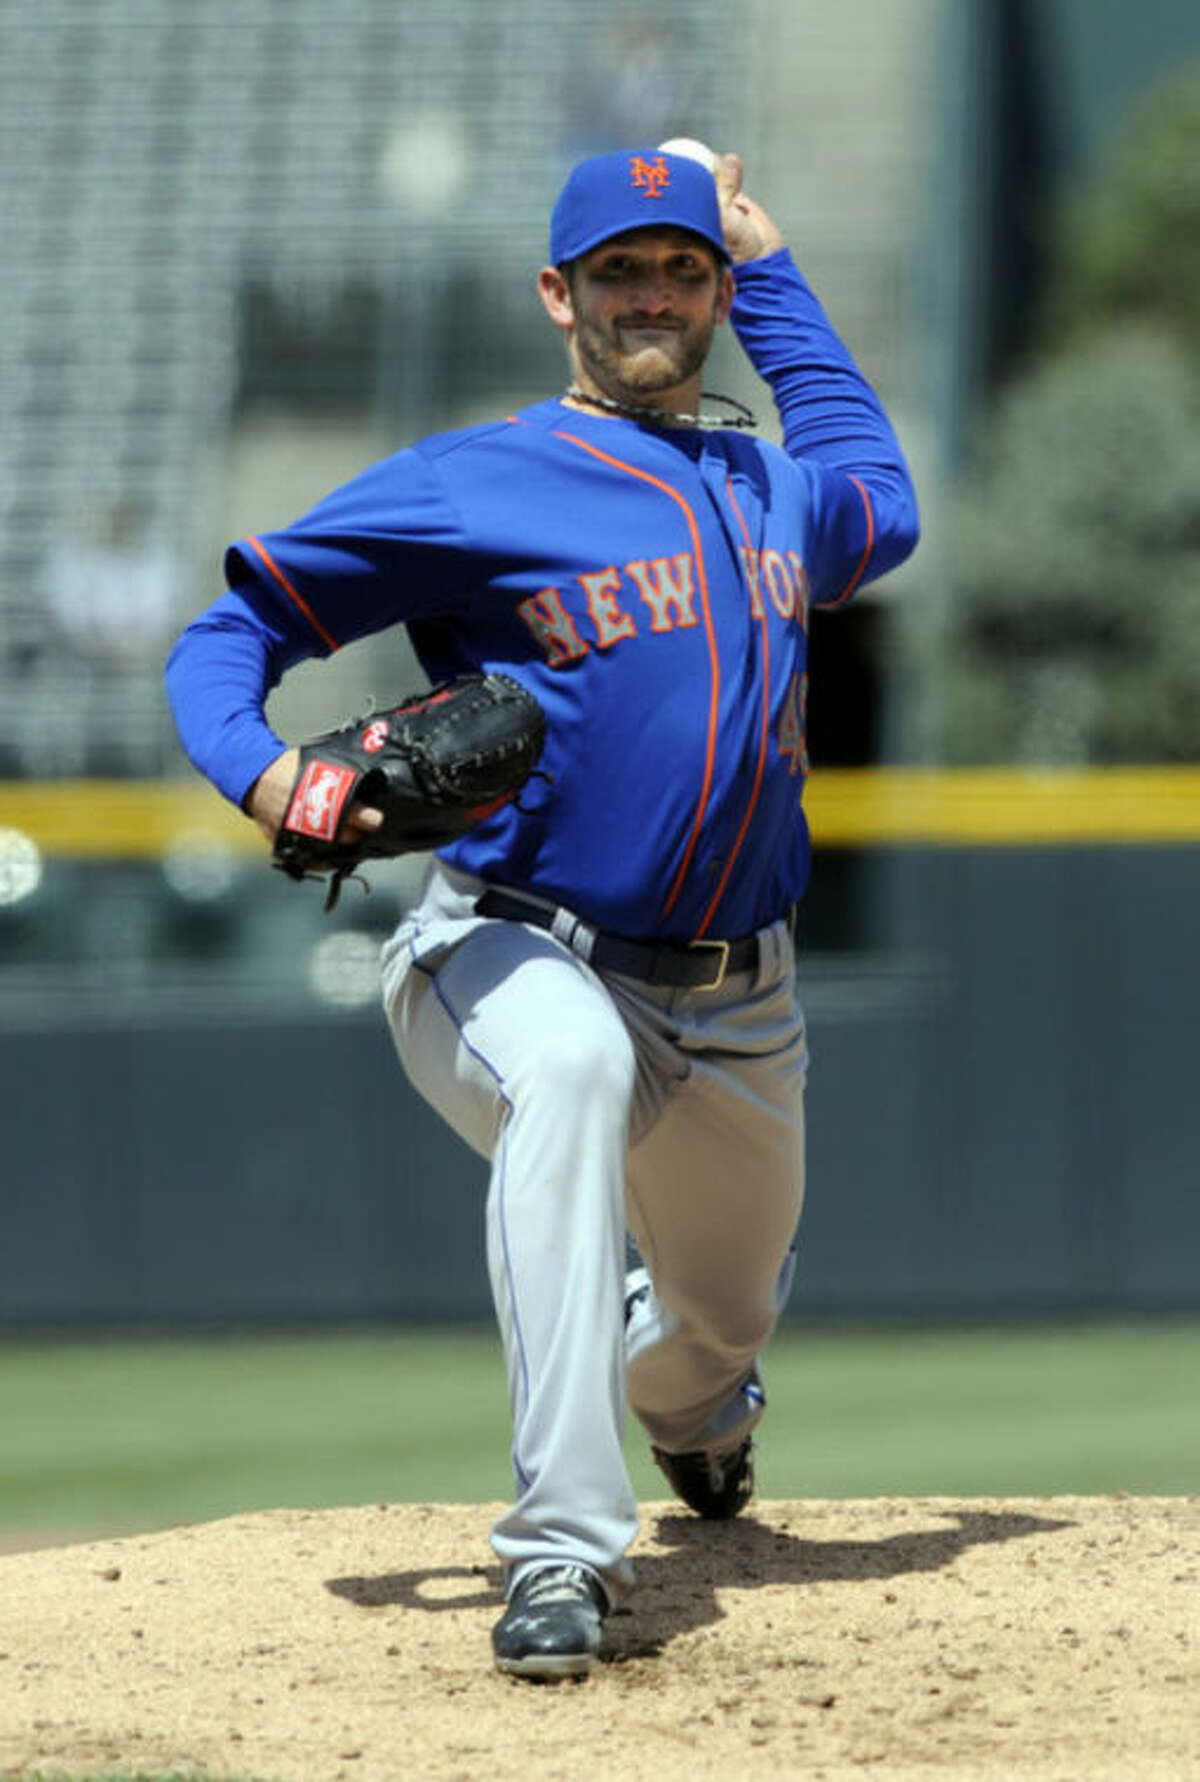 New York Mets starting pitcher Jonathon Niese throws to the plate against the Colorado Rockies during the first inning of a baseball game on Thursday, April 18, 2013, in Denver. (AP Photo/Jack Dempsey)